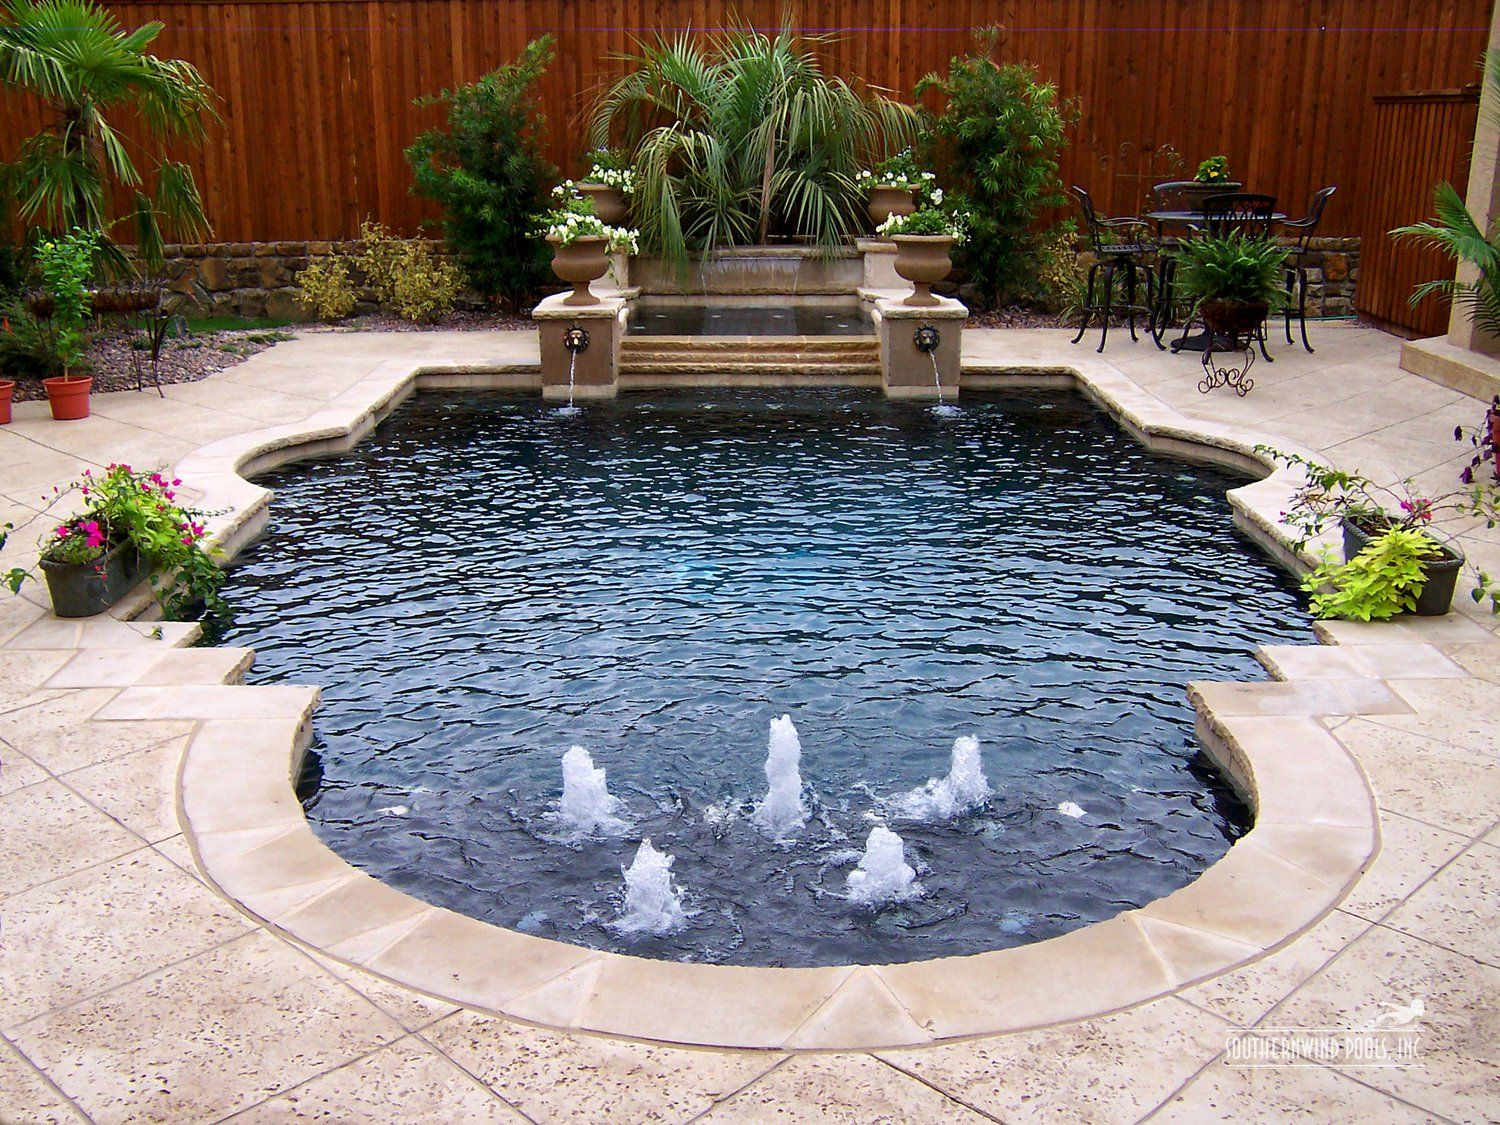 THIS IS IT. A Small Formal Pool. Wouldnt You Feel Like A